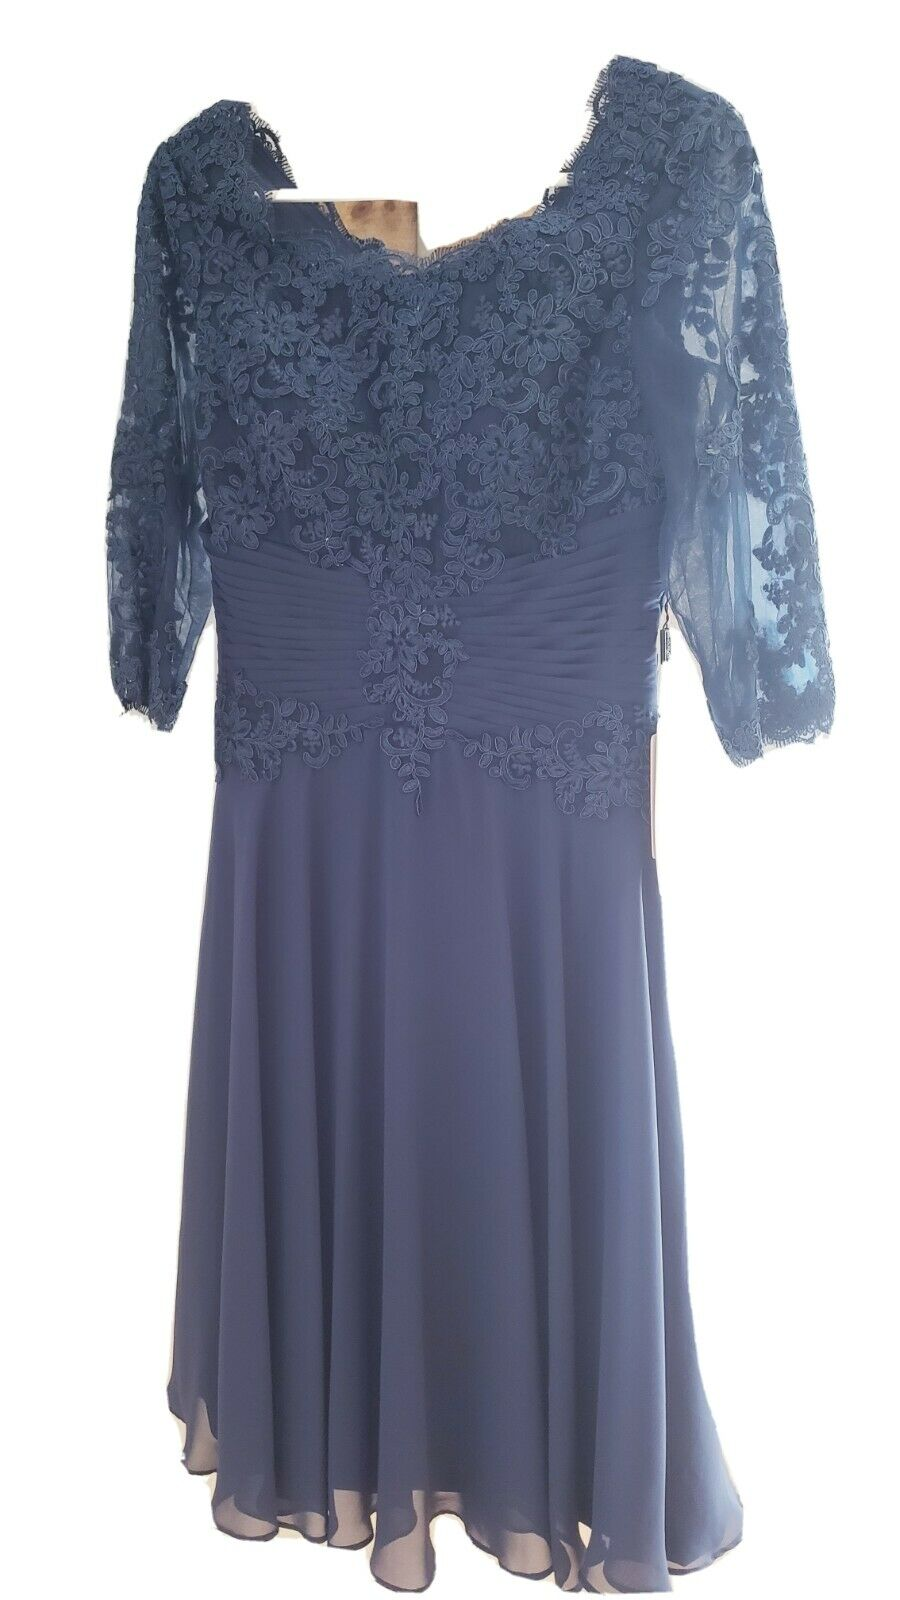 NWT JJ's House Mother of the Bride Dress w/Jacket Dark Navy Blue Size 6